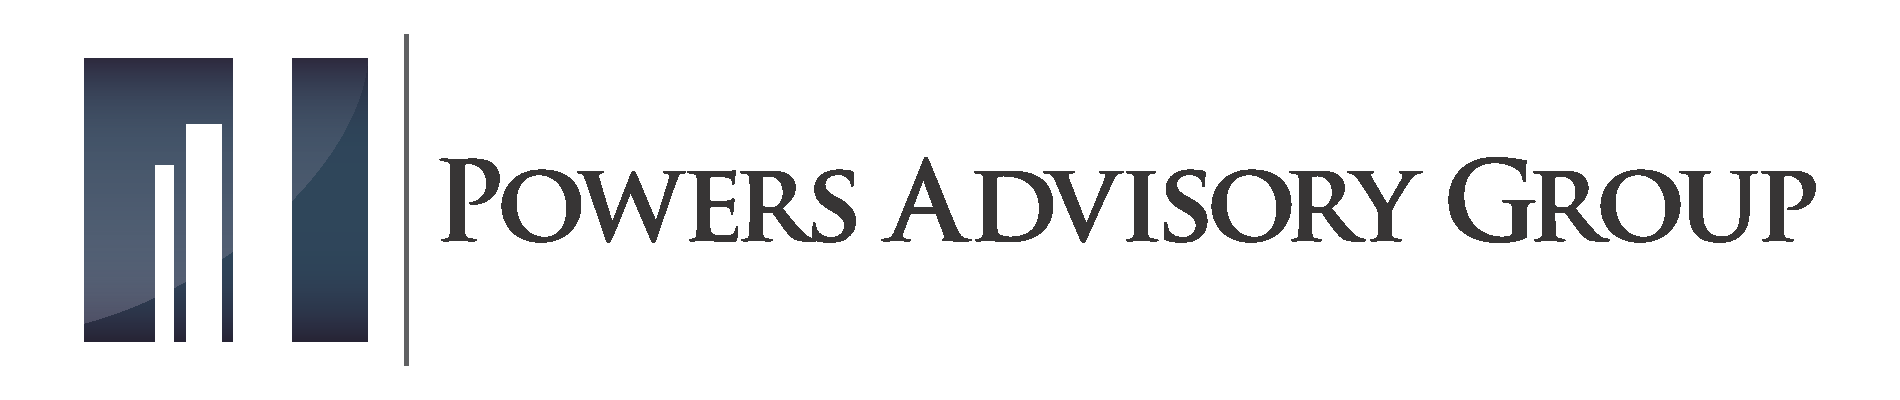 Logo for Powers Advisory Group